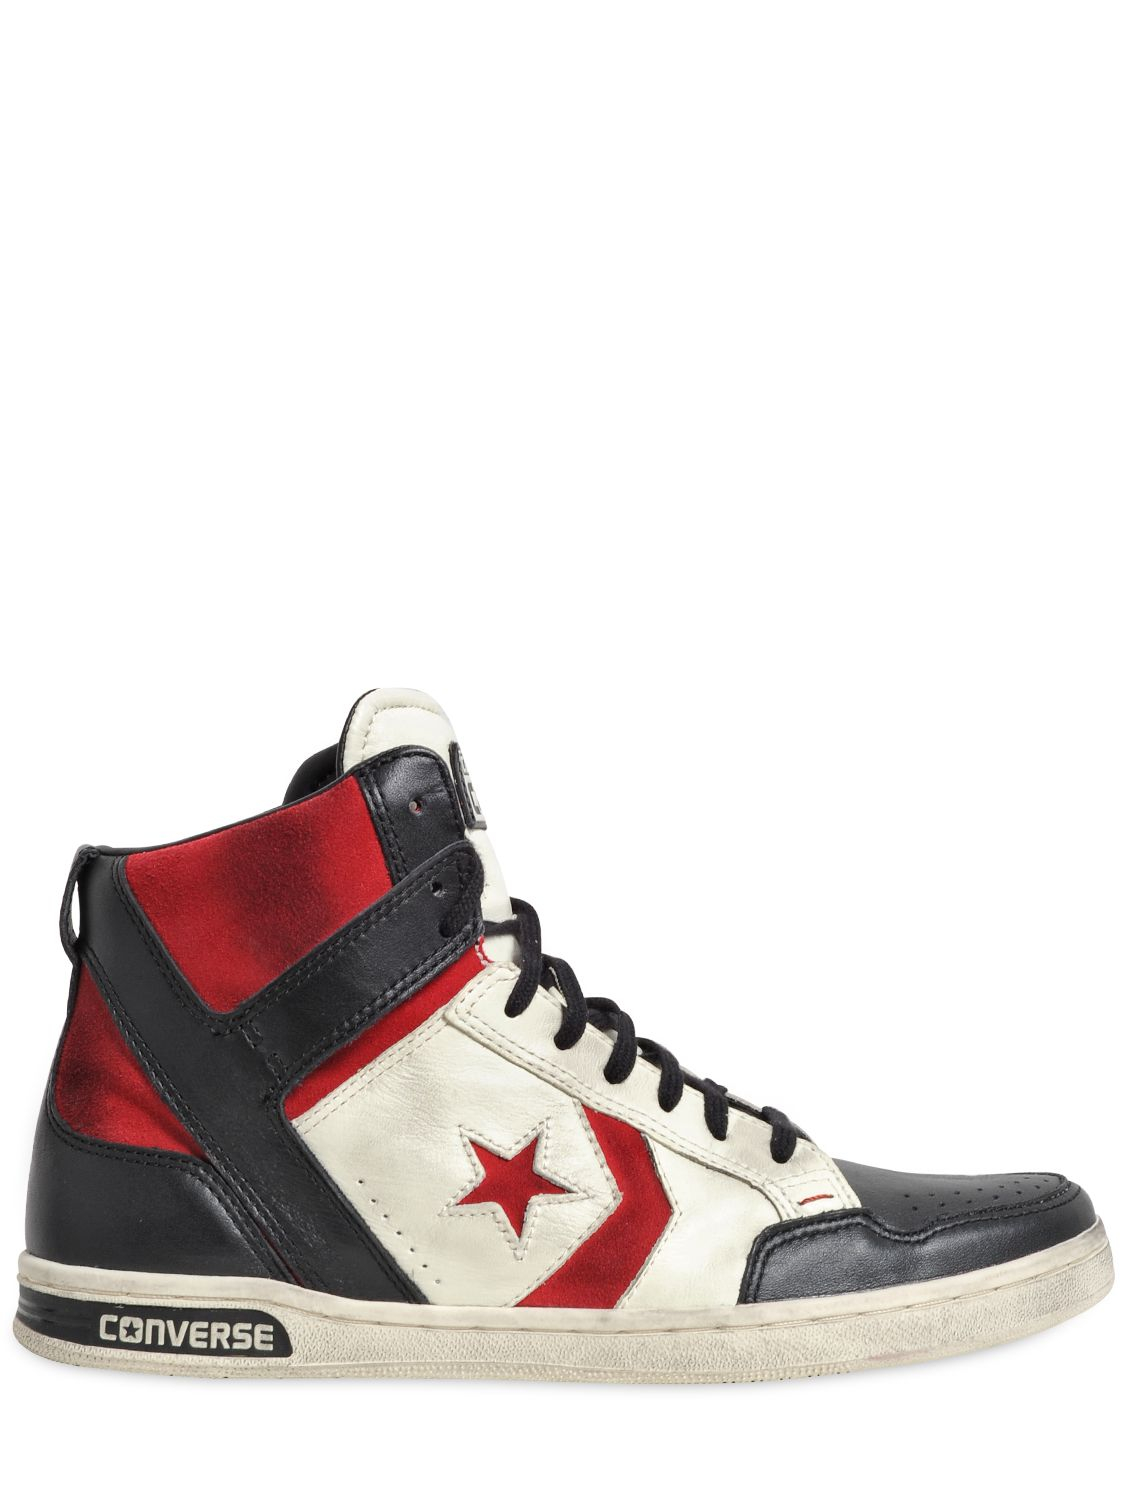 f4a7d0cfe78b Converse Weapon Leather High Top Sneakers in White for Men - Lyst